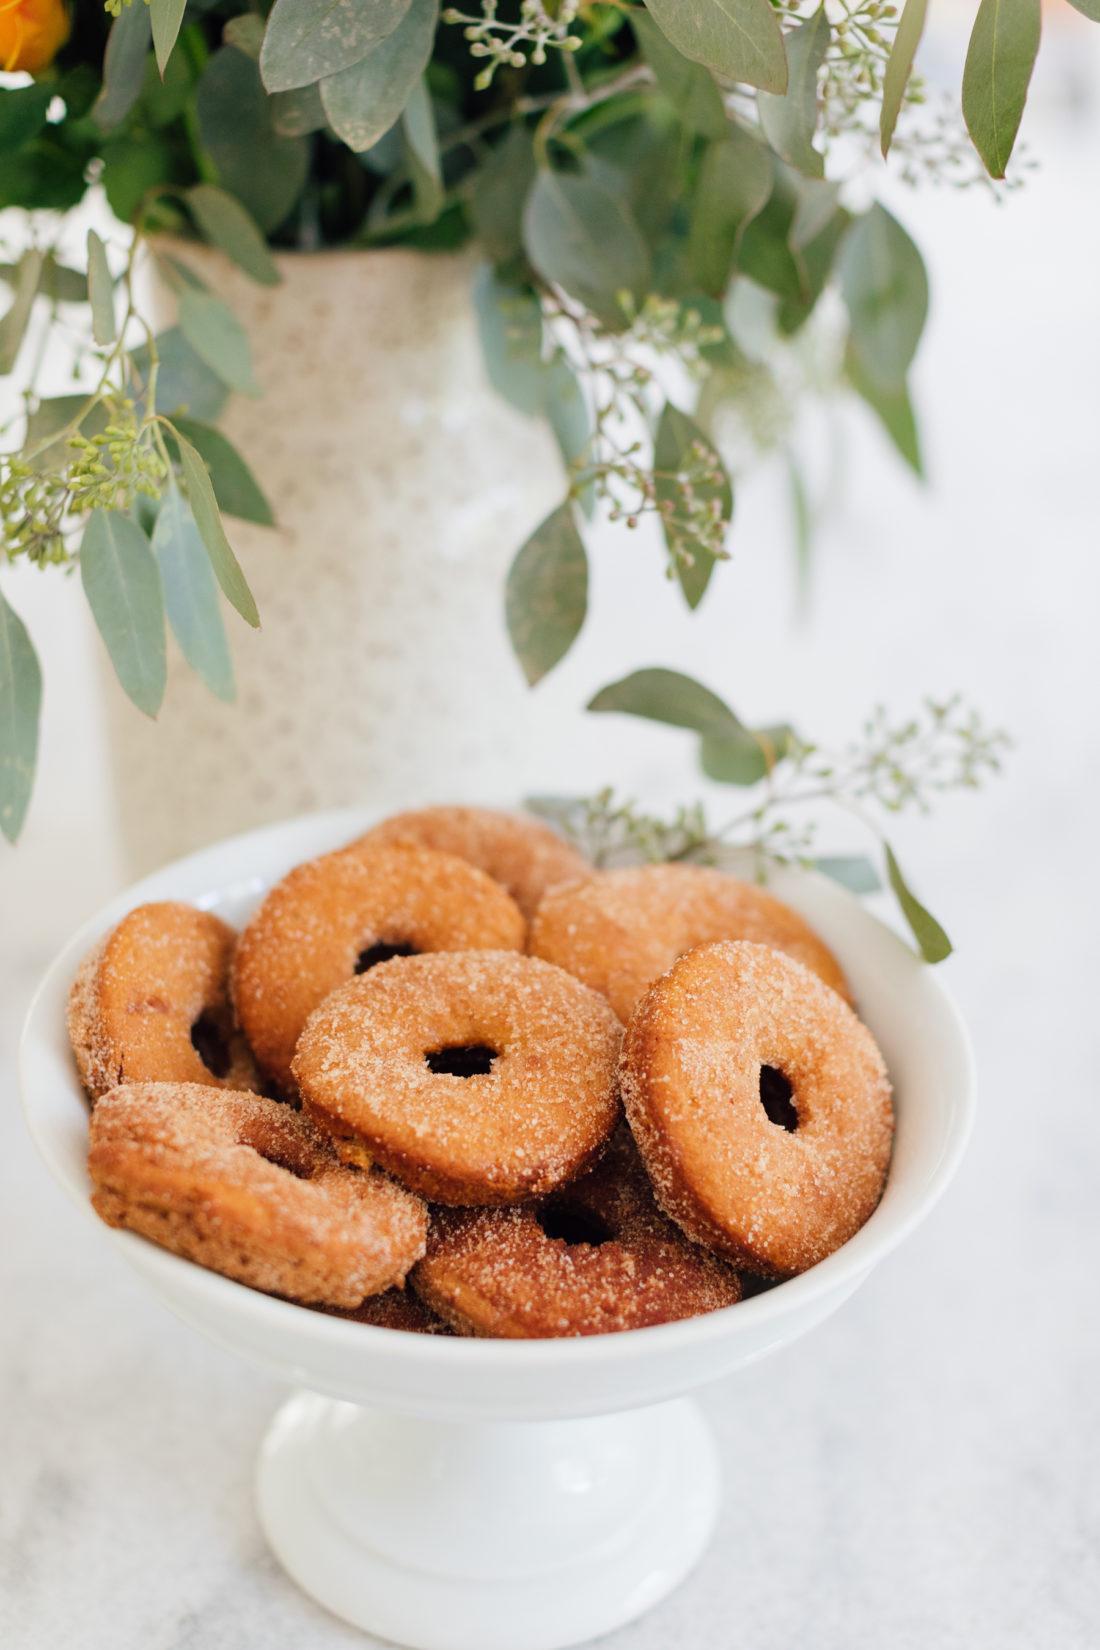 Eva Amurri Martino shares her recipe for delish baked apple cider donuts